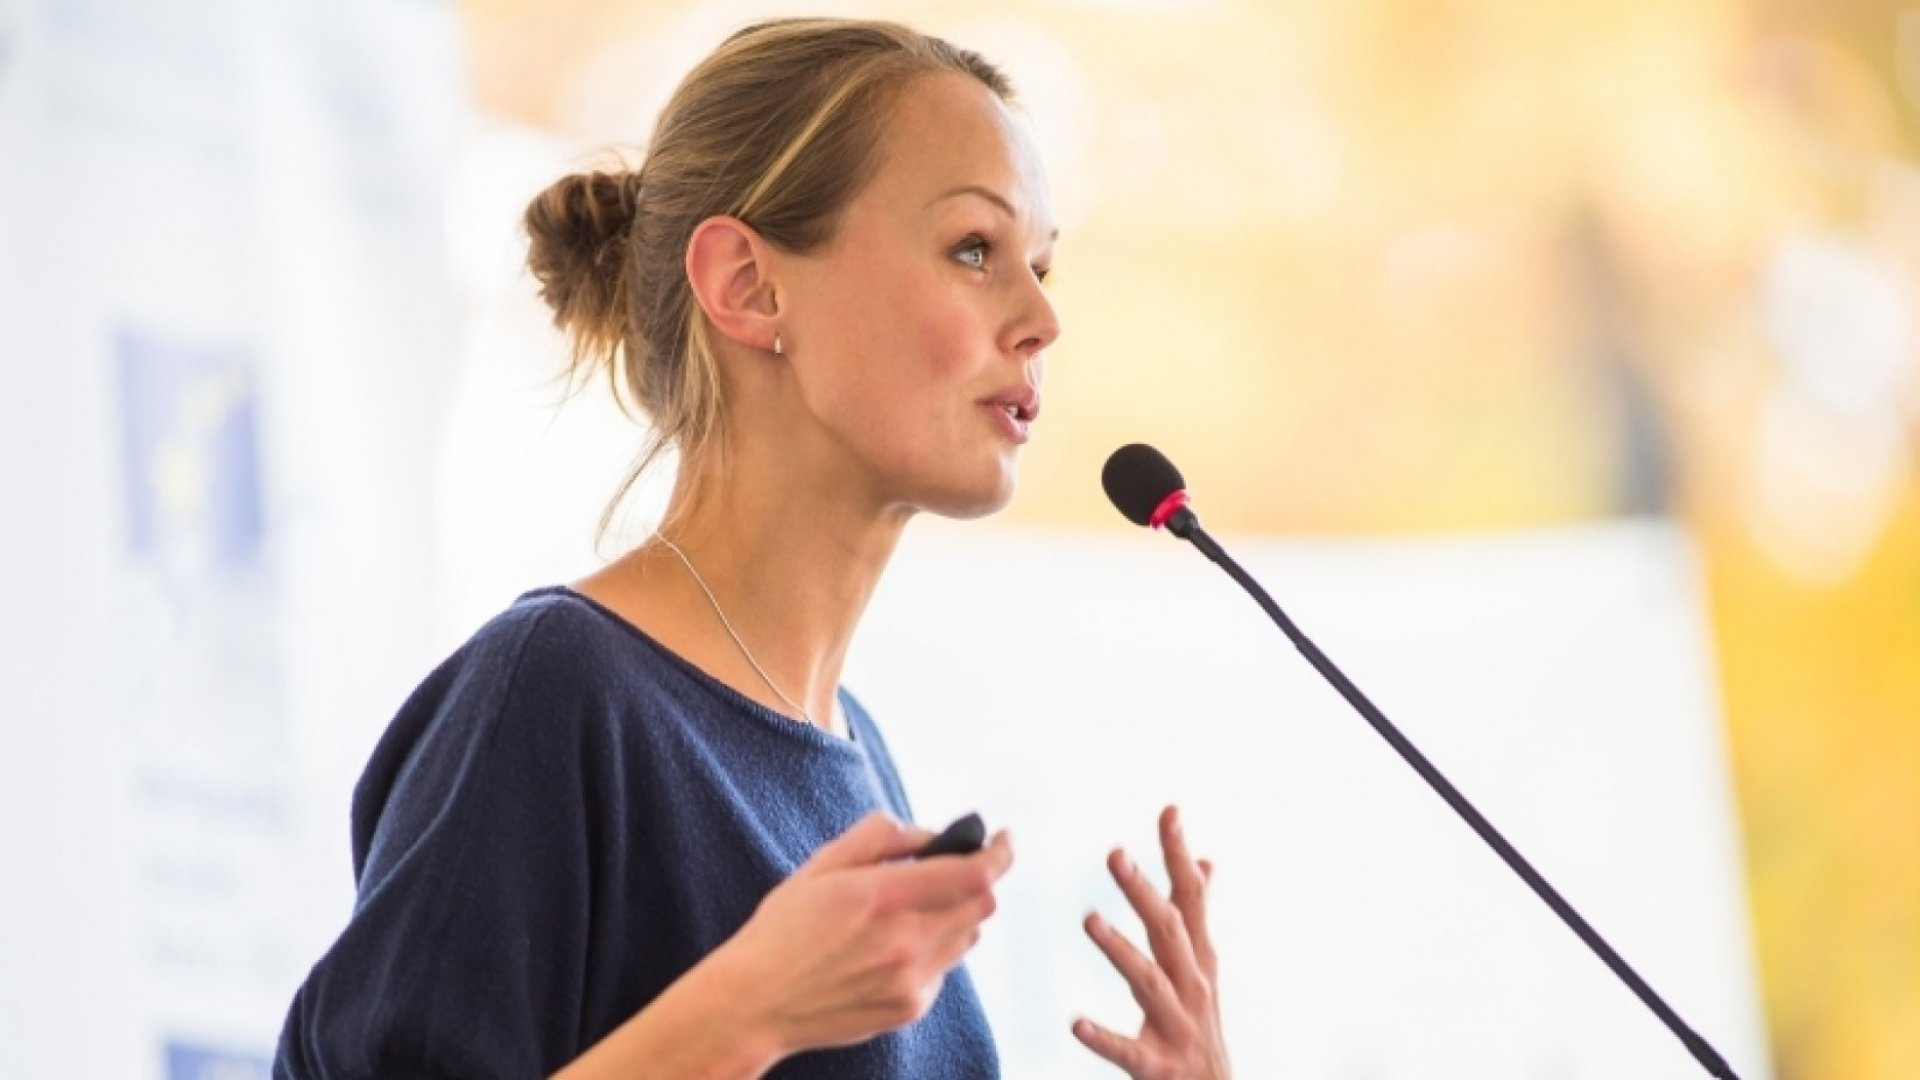 The Ultimate Guide to Becoming a Confident, Charismatic Speaker